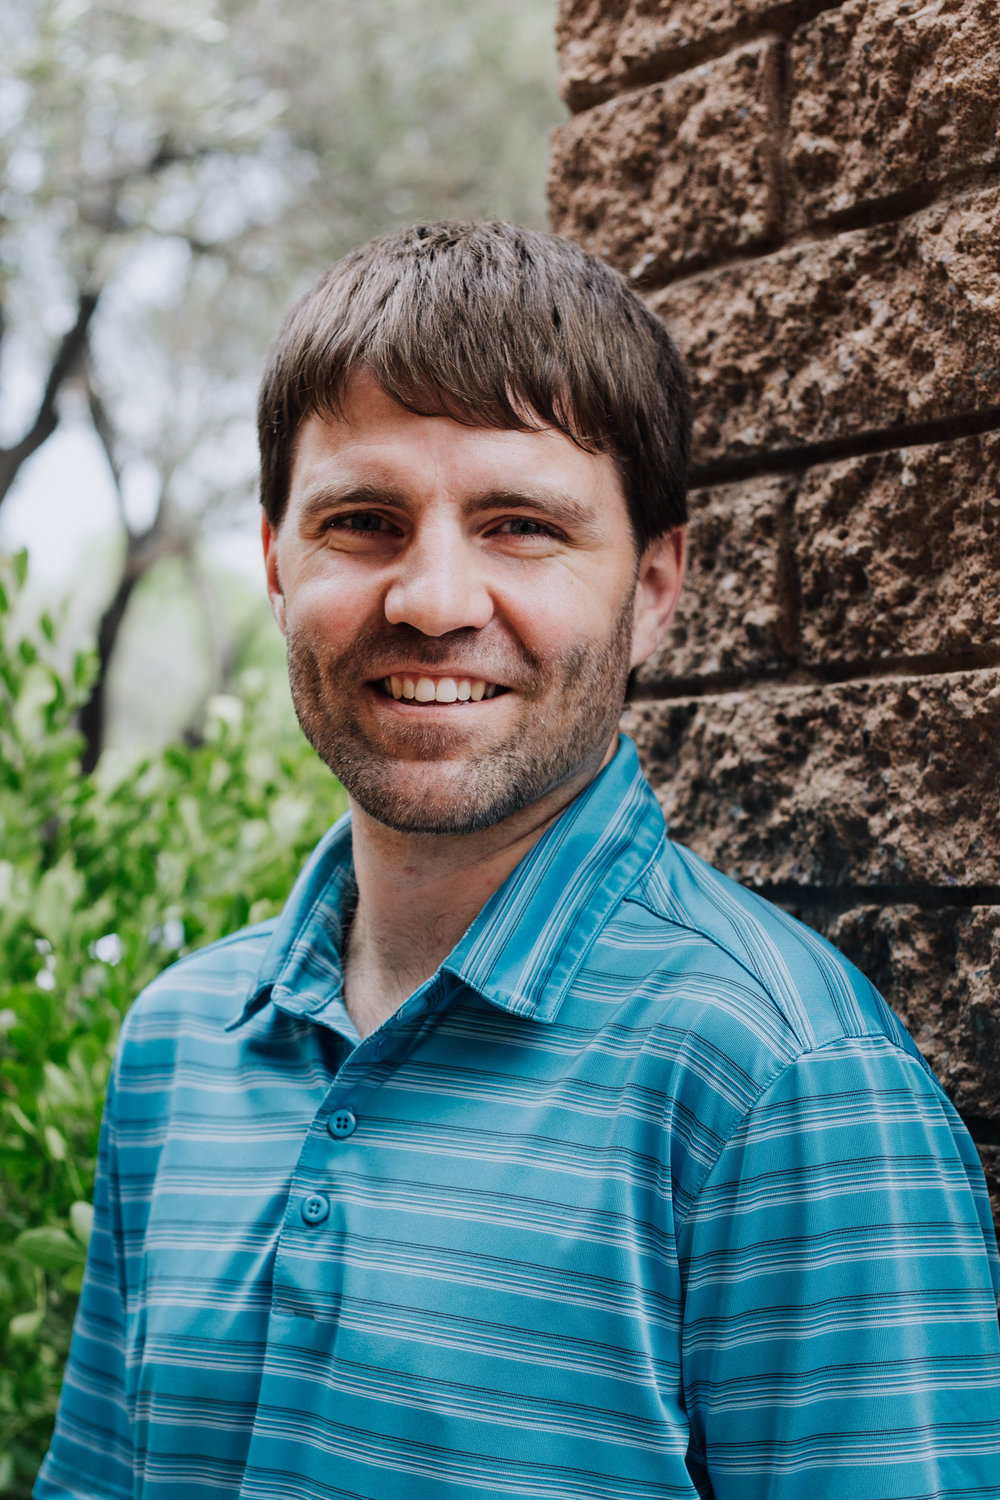 Daniel Muritz EA - Daniel Muritz was born and raised in Tucson, AZ and graduated from Mountain View High School in 2003. He played soccer at Pima Community College for two years then transferred to, and graduated from, The University of Arizona in 2007 with an Accounting degree. He has been working with Steven Phillips and Associates since June 2005 and in March 2012 Danny passed the IRS exams and became an Enrolled Agent.Email: danny@stevephillipscpa.com